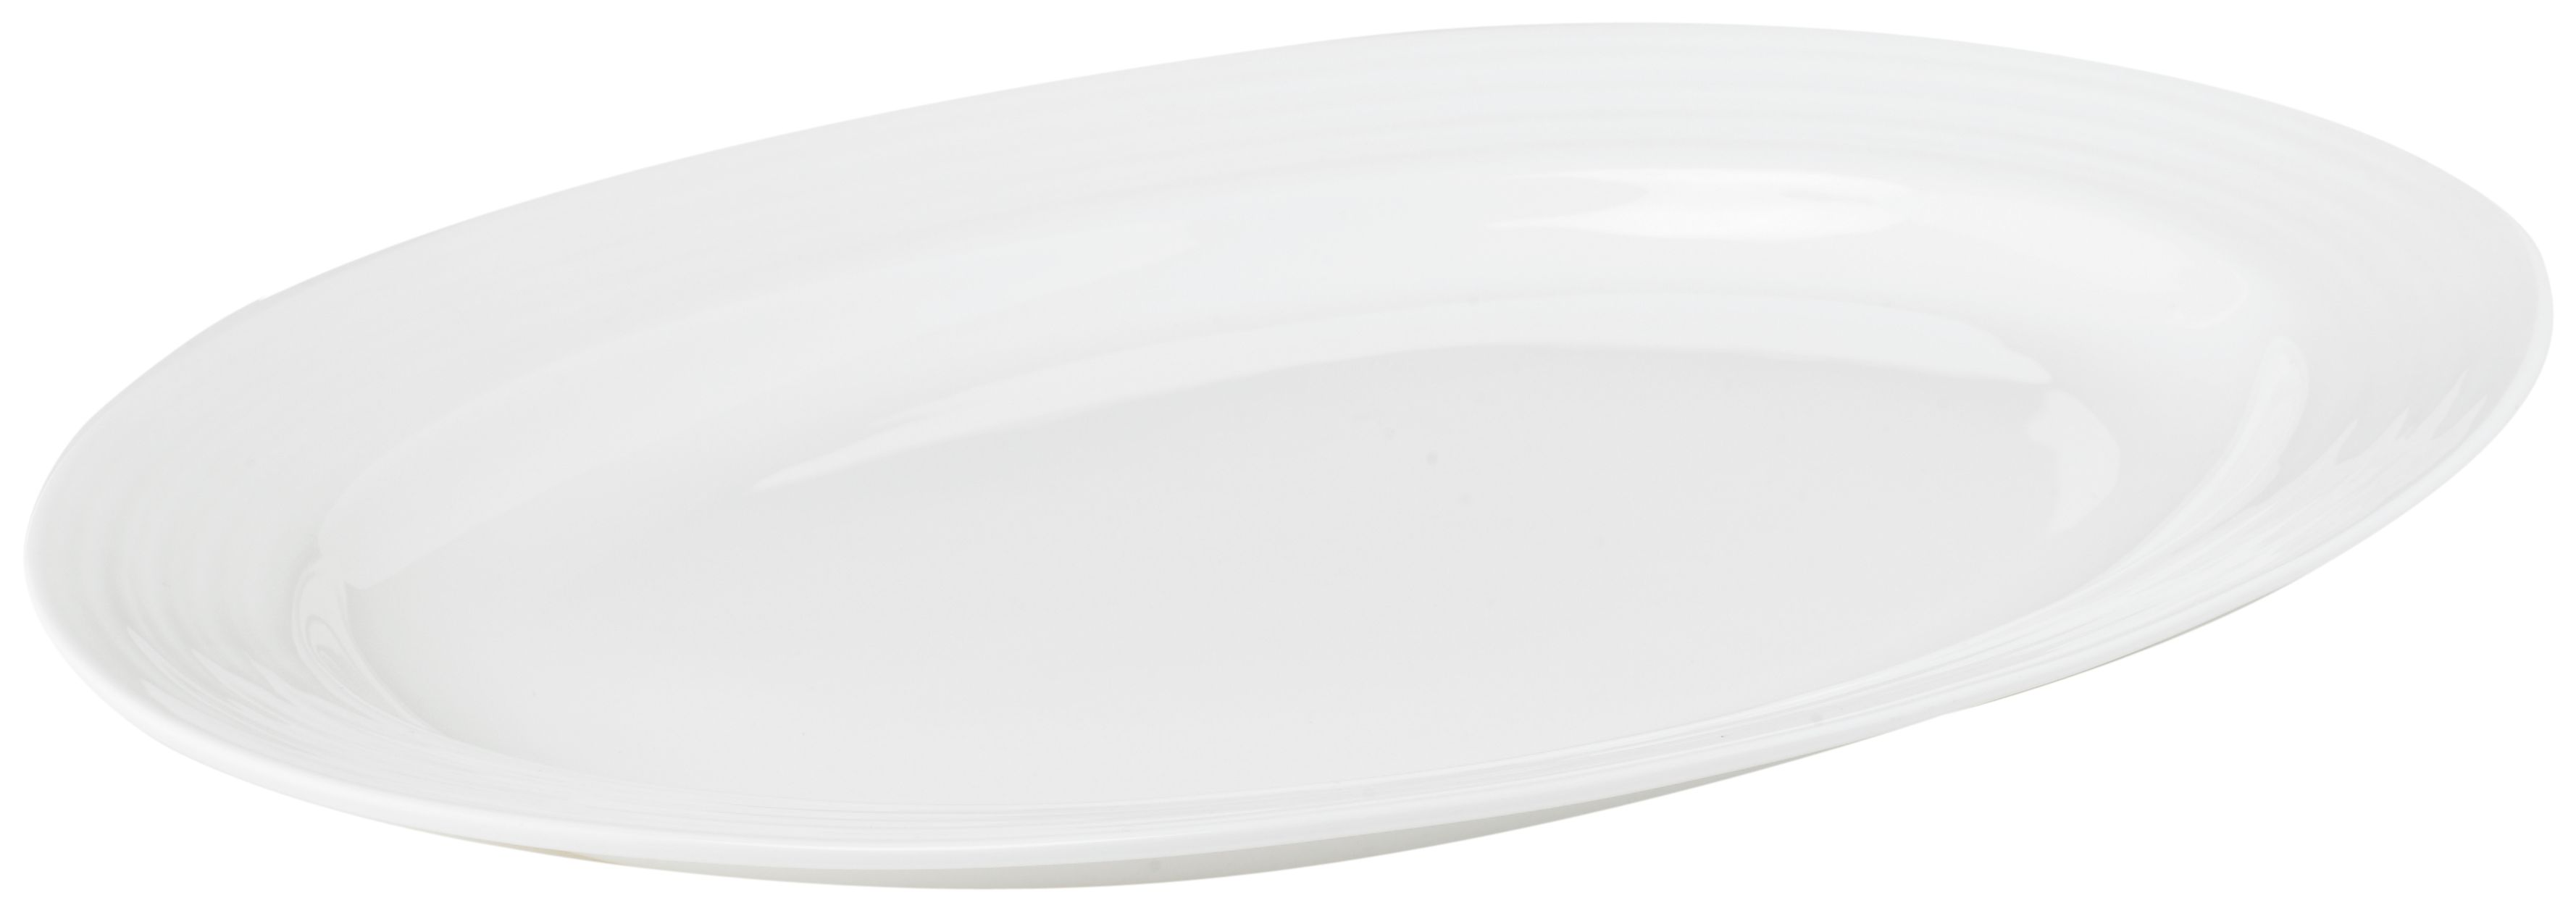 Soho bone china large oval platter